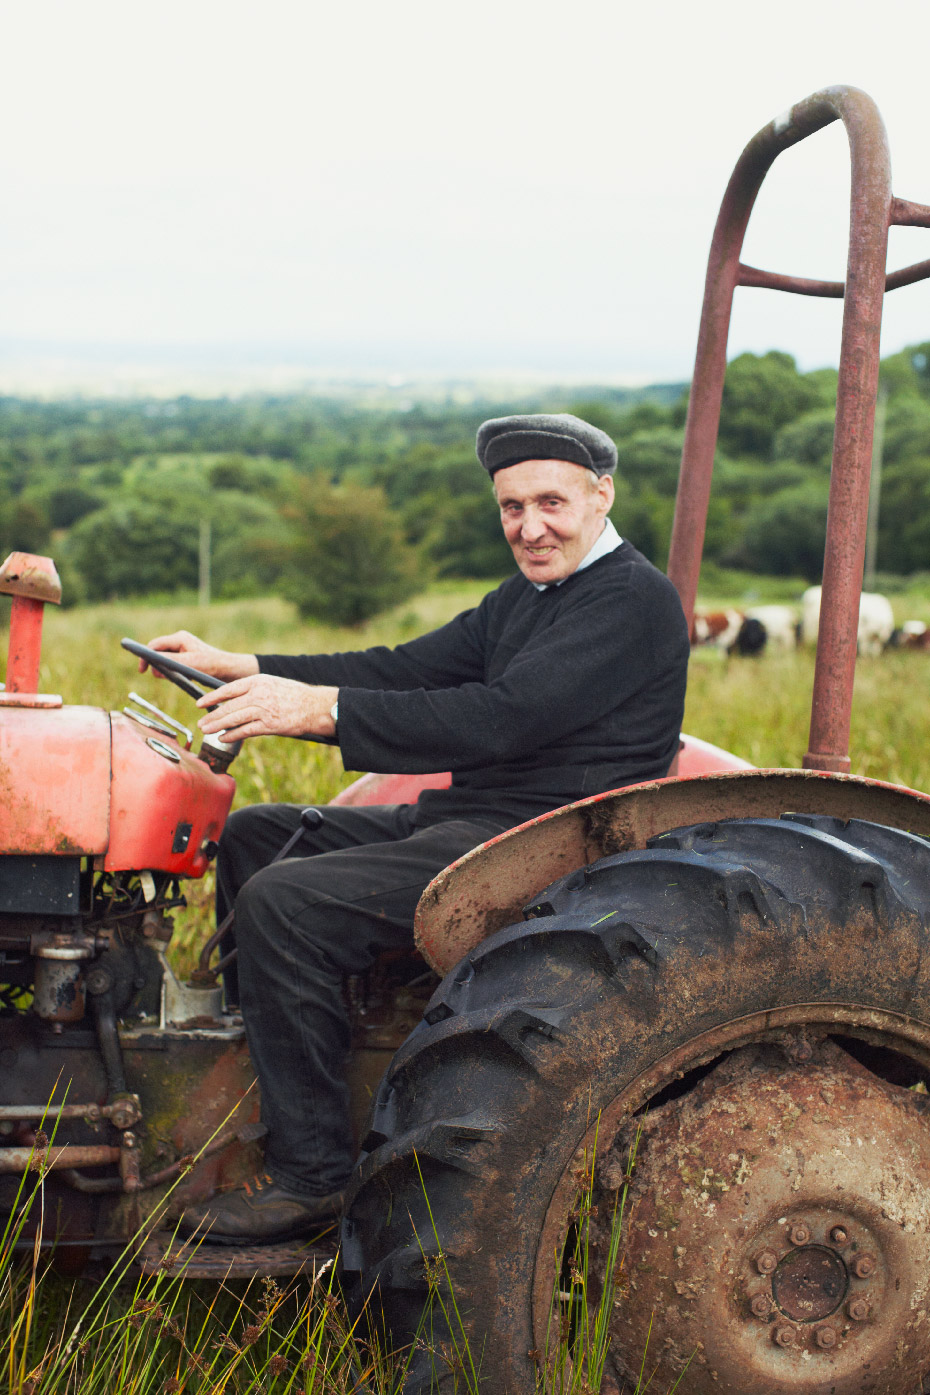 Stacey Van Berkel Photography I Irish farmer on red tractor in field I Donegal, Ireland